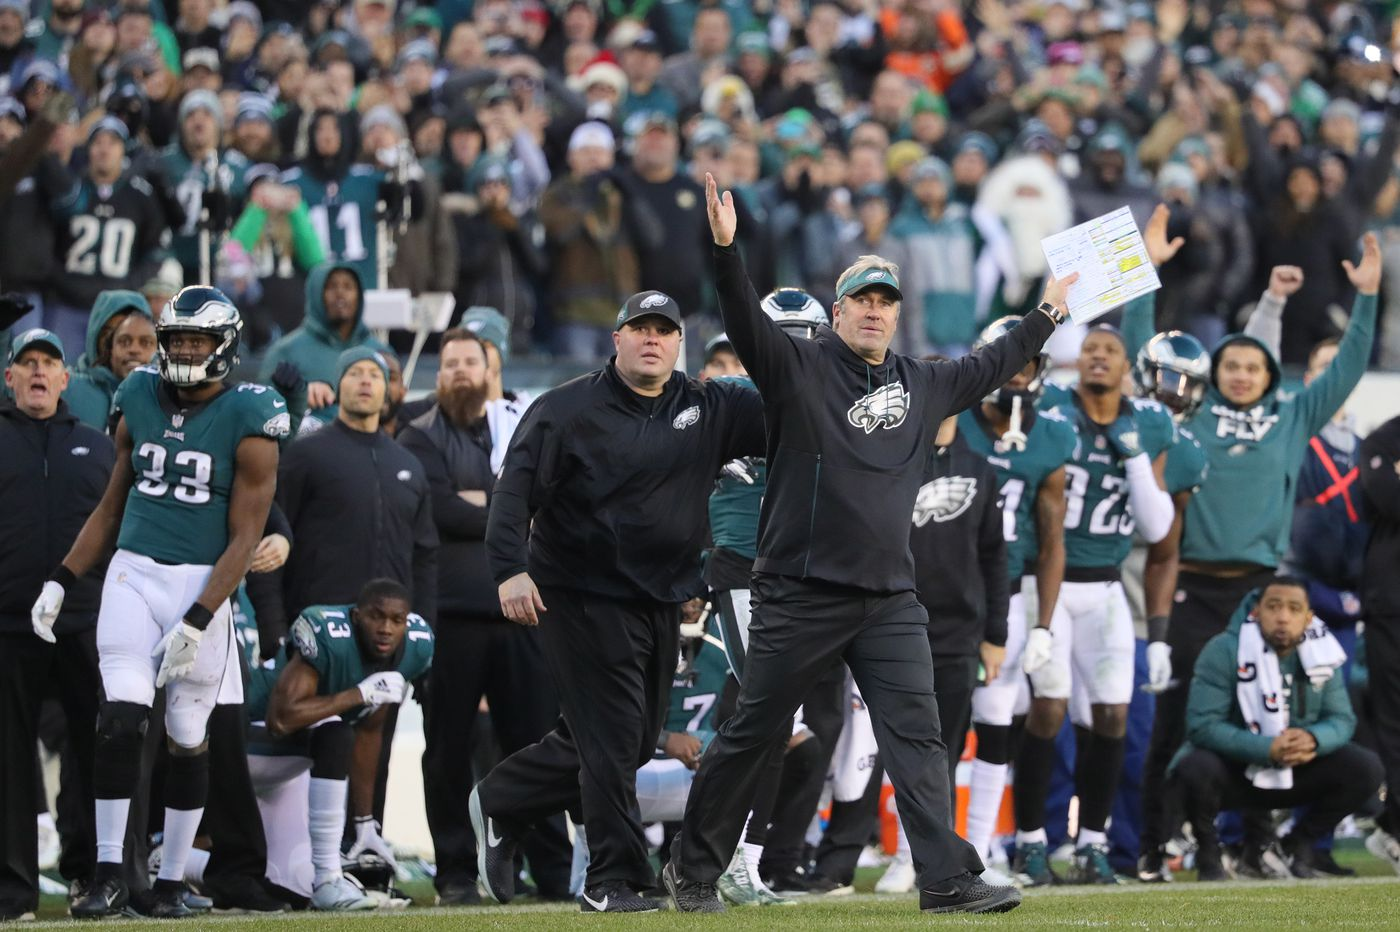 Doug Pederson: Eagles are playing their best football of the season right now